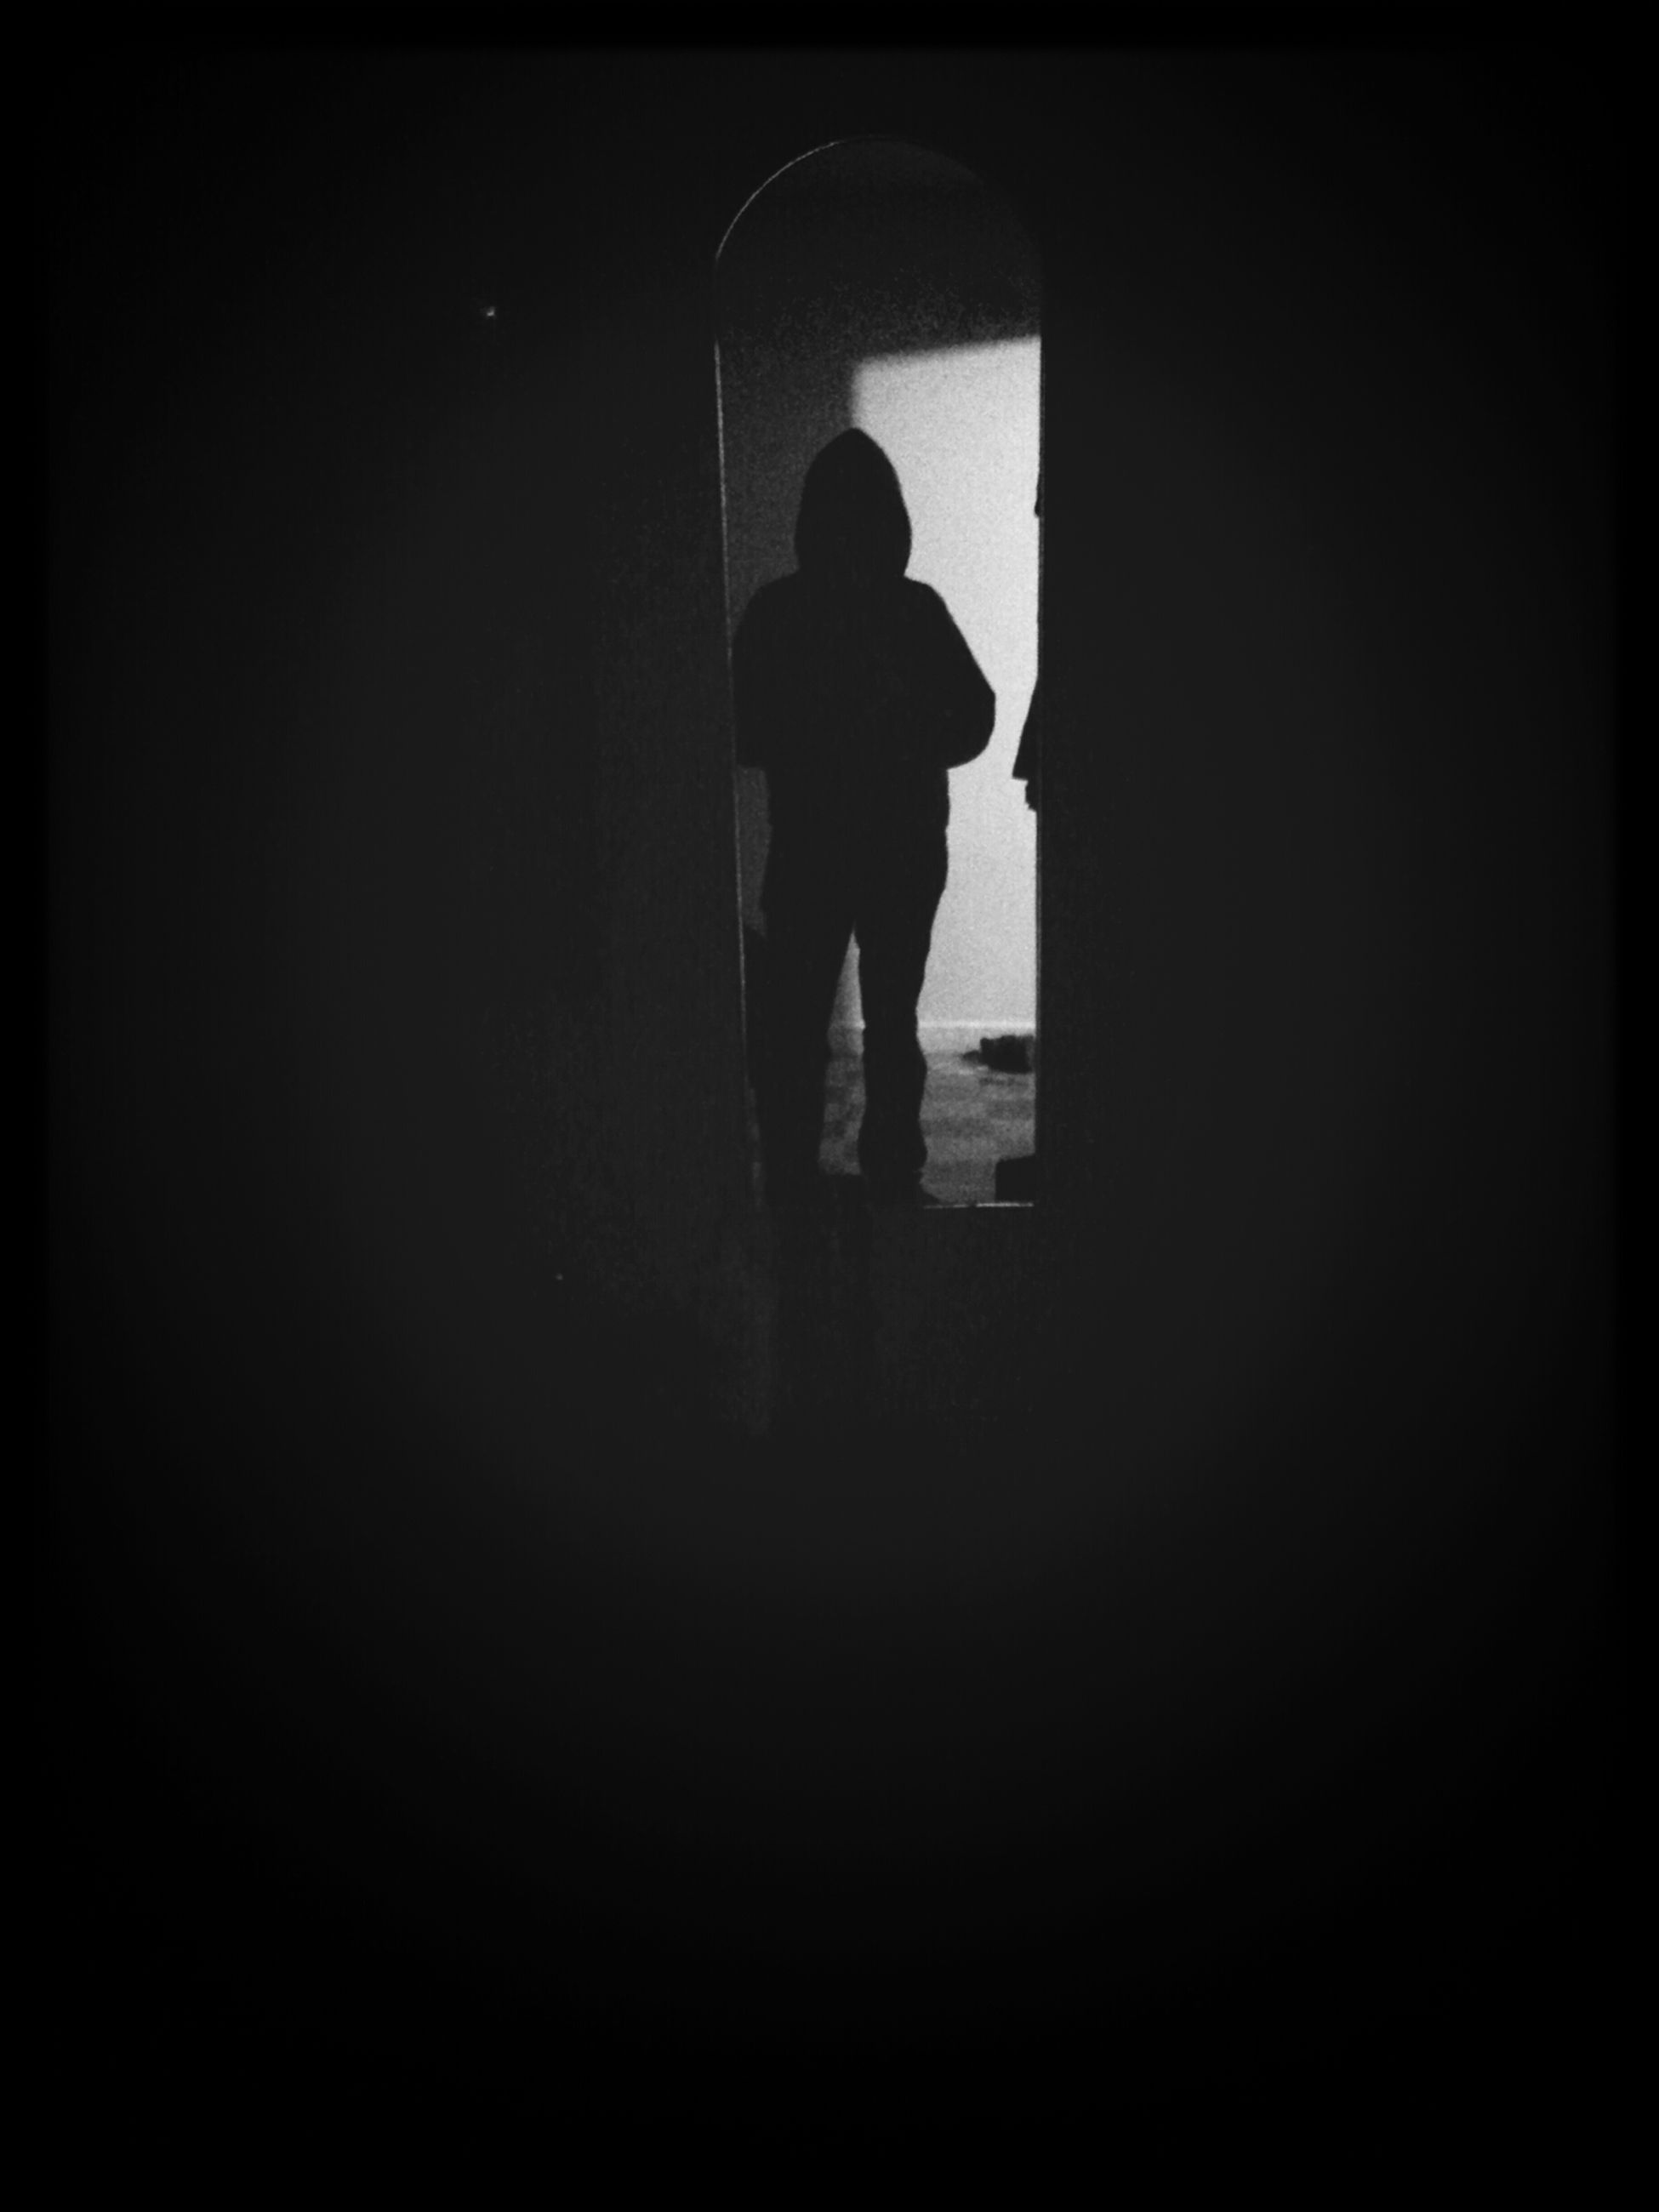 indoors, silhouette, lifestyles, men, full length, dark, rear view, standing, copy space, leisure activity, walking, tunnel, person, wall - building feature, side view, unrecognizable person, night